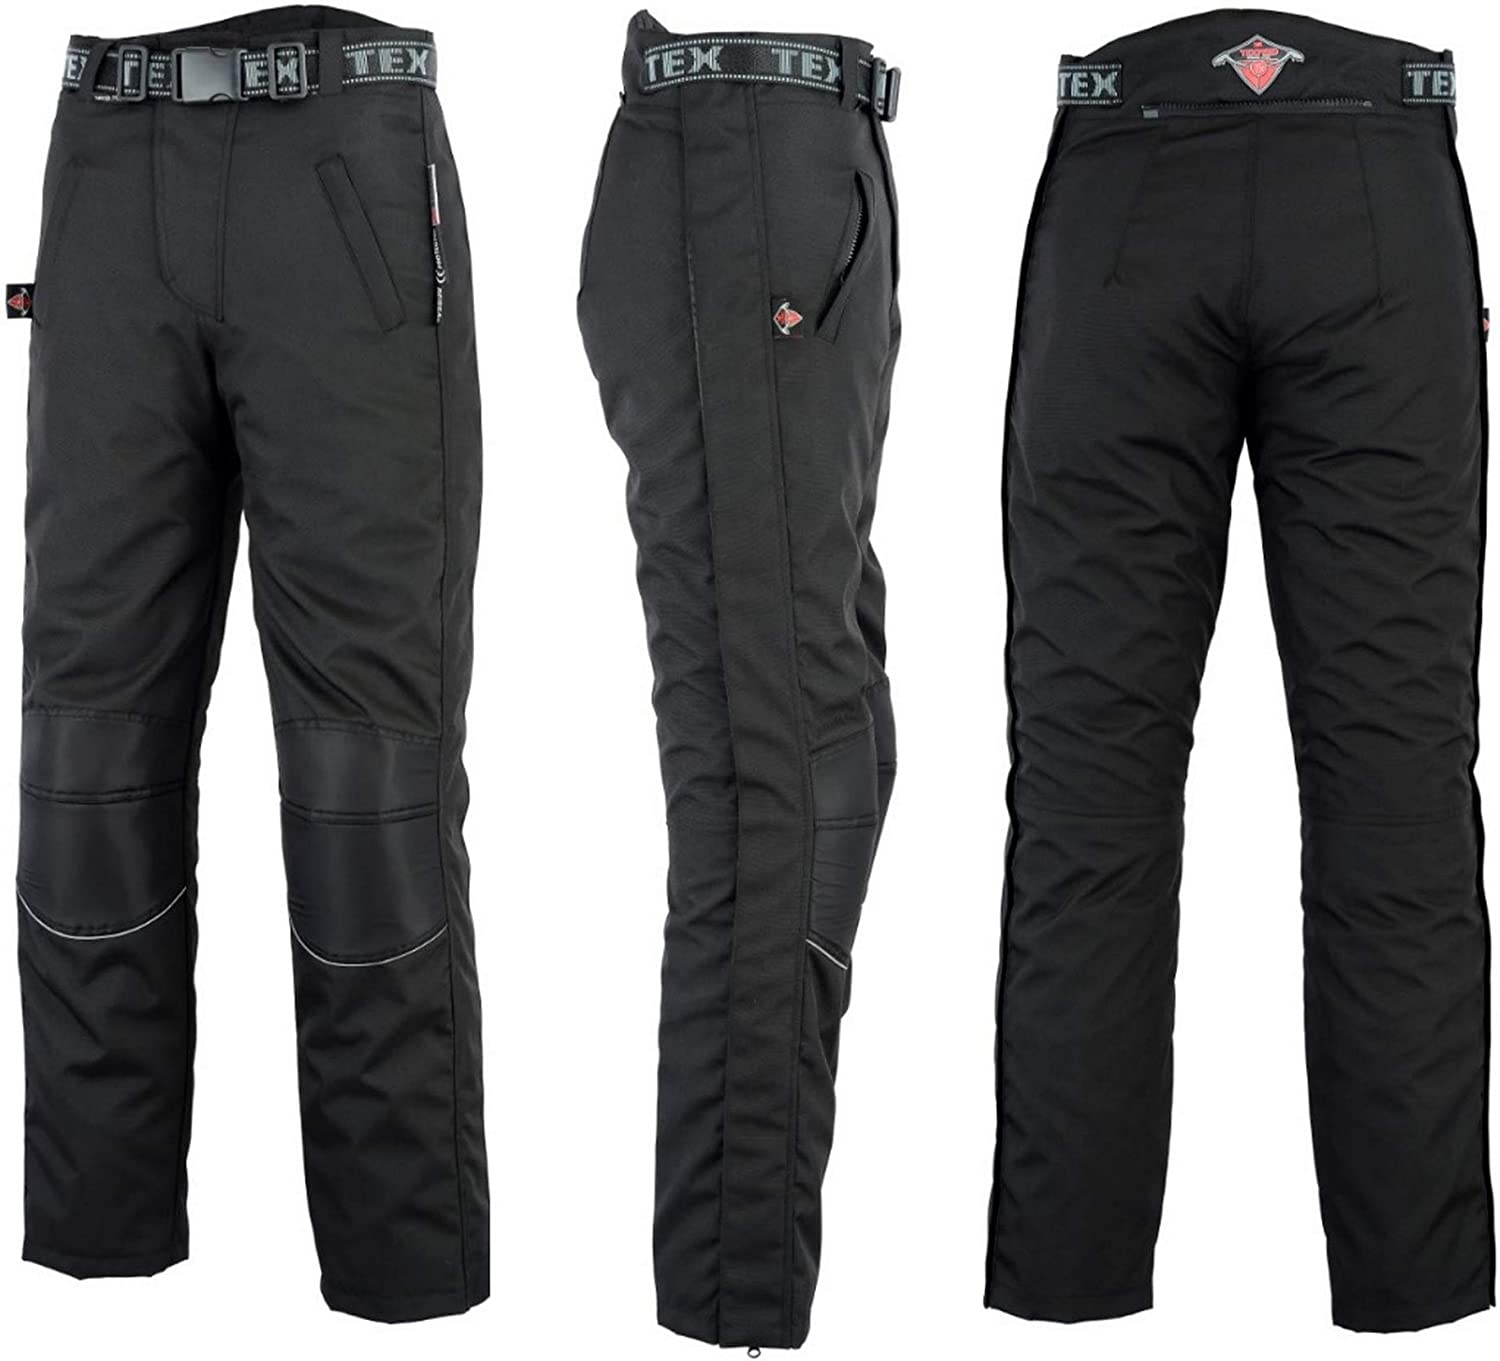 Full Length Side Leg Zips Commuting To Work Waterproof With CE Armour Protection By Texpeed Motorcycle Over Trousers